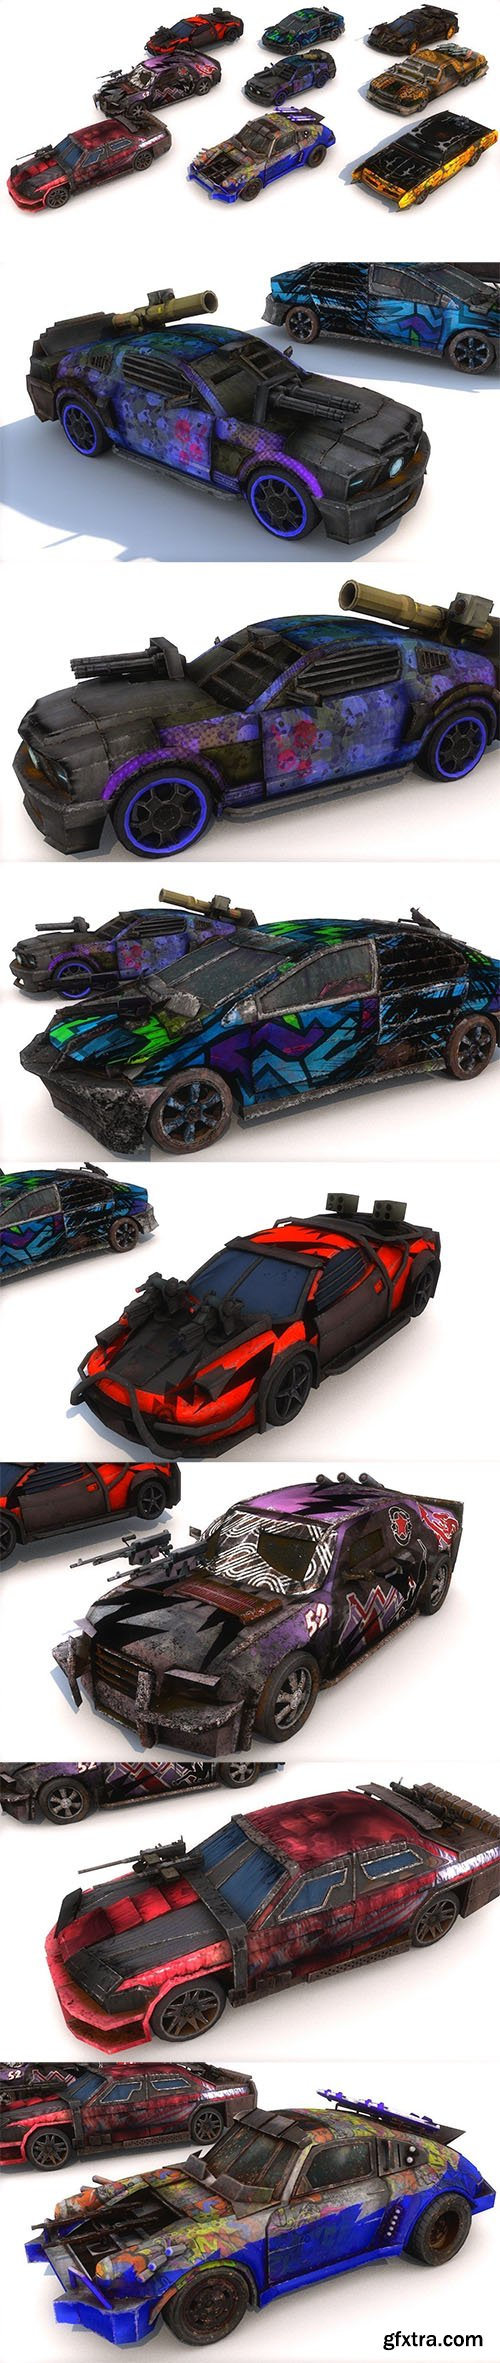 Cgtrader - Pack Of 9 low poly game ready monster death race cars Low-poly 3D model